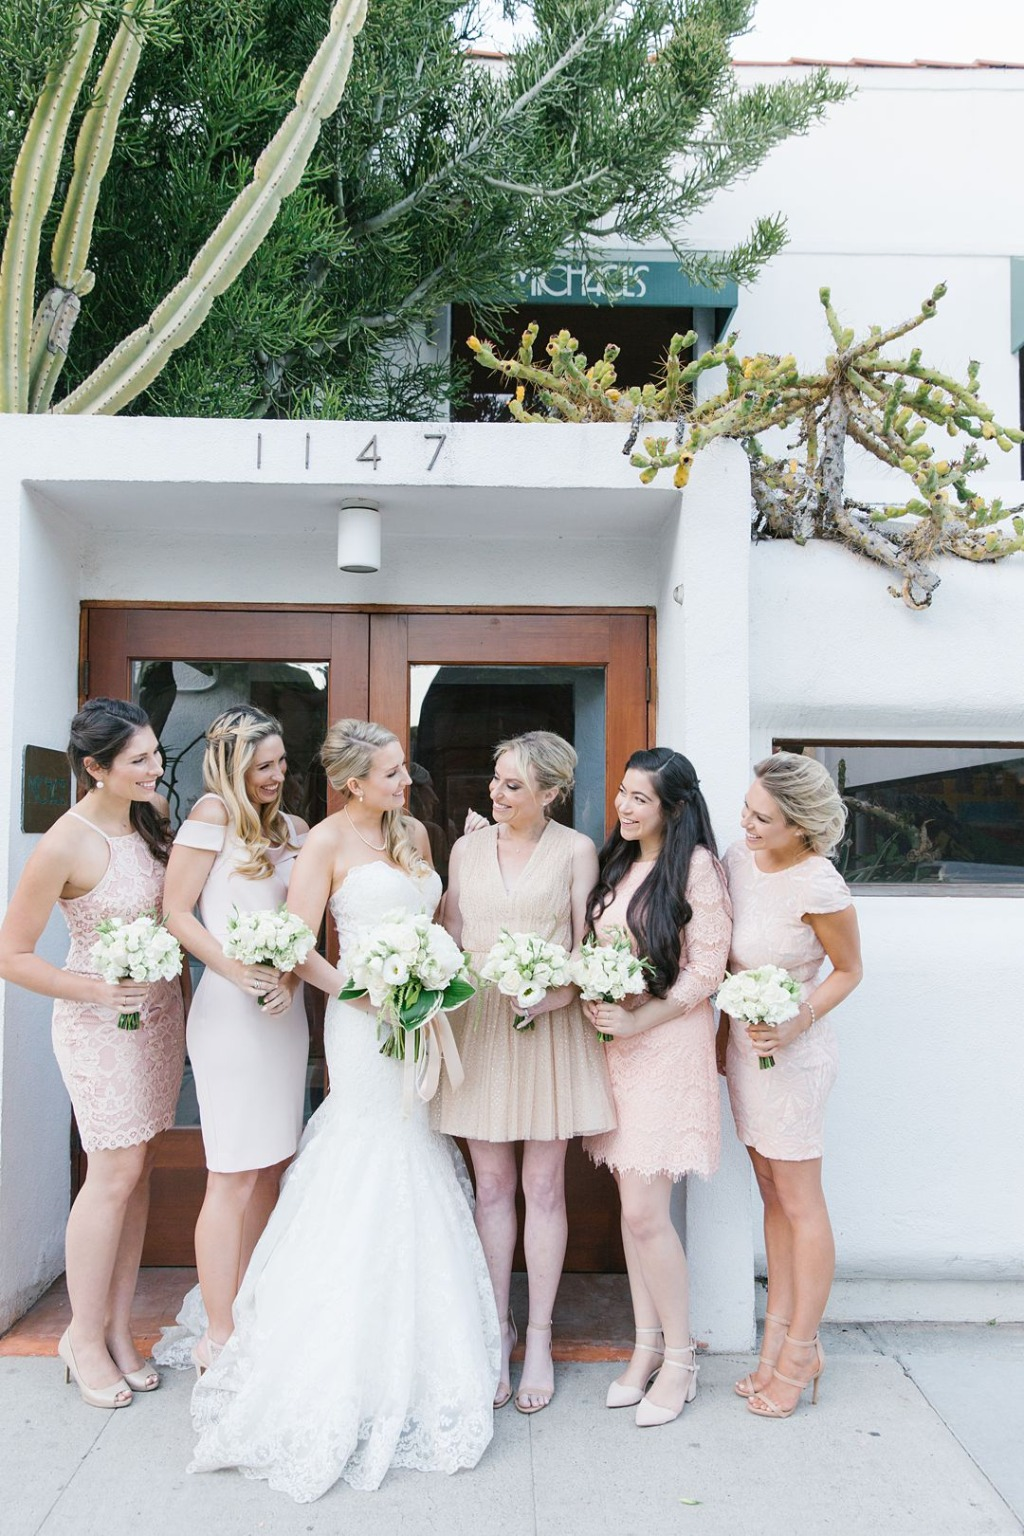 Soft blush tones made for a gorgeous color palette at this Santa Monica wedding!